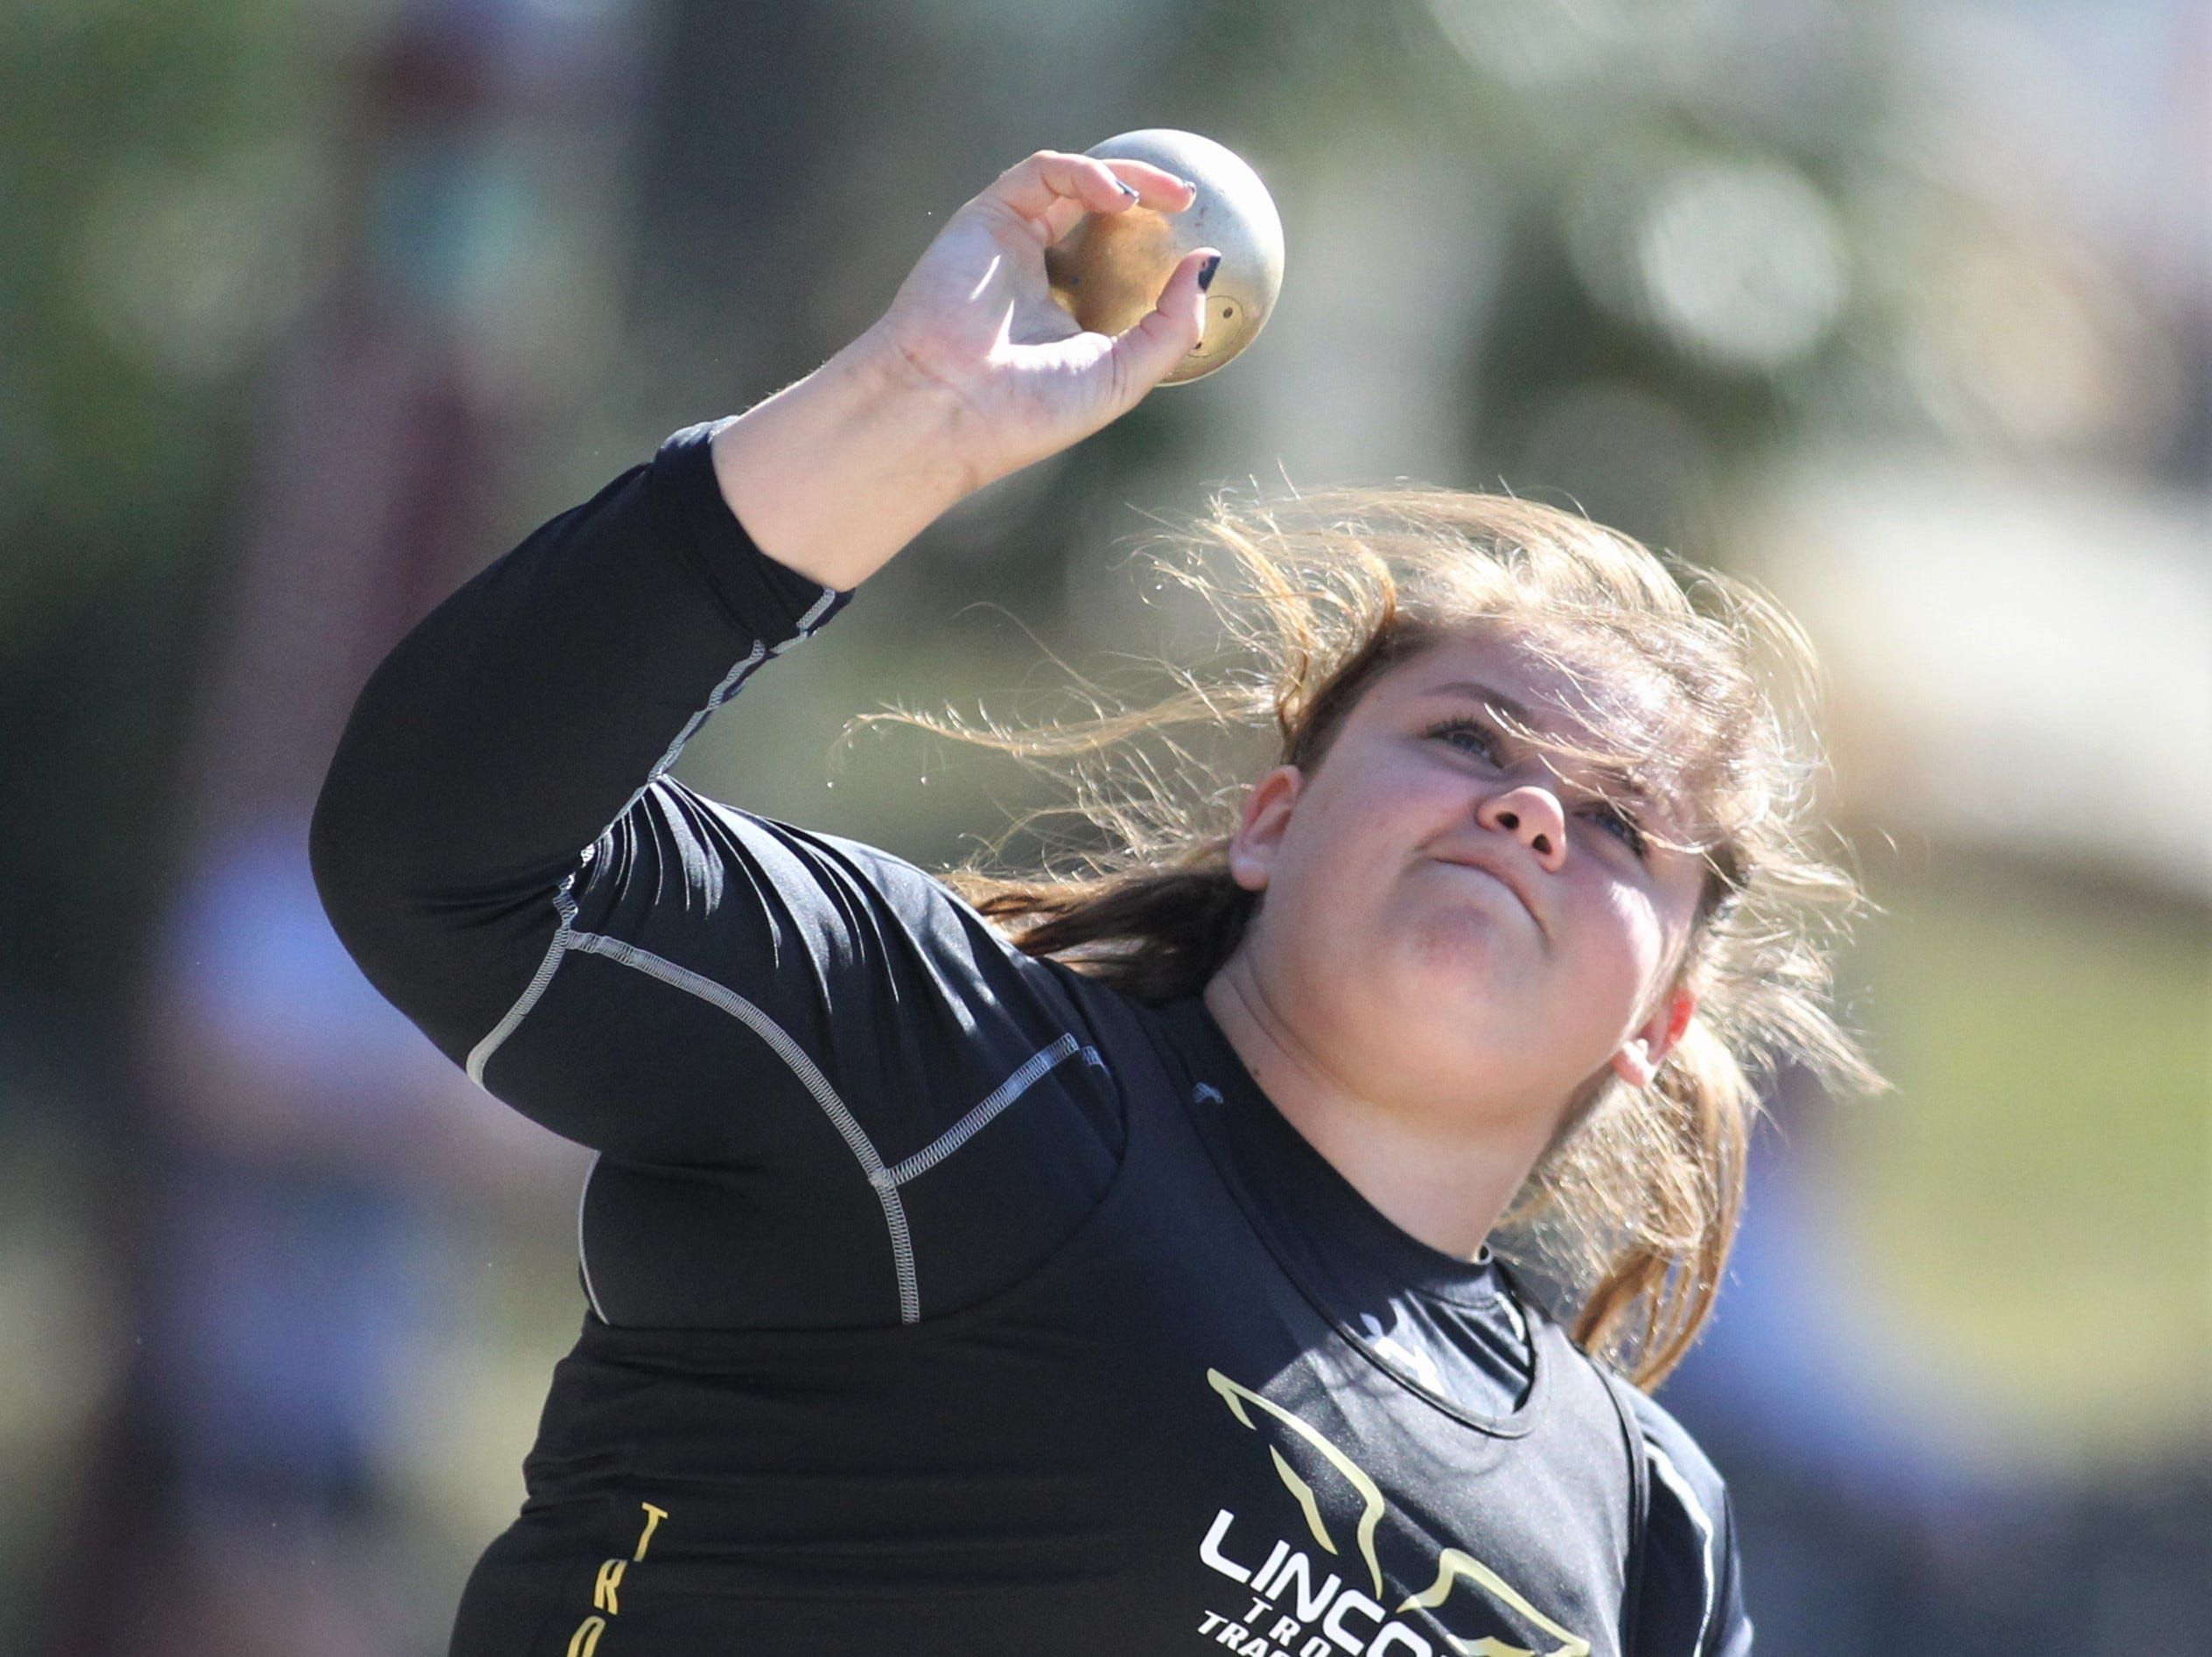 Lincoln junior Macy Kelley throws shot put during the 40th annual FSU Relays at Mike Long Track on Saturday, March 23, 2019.